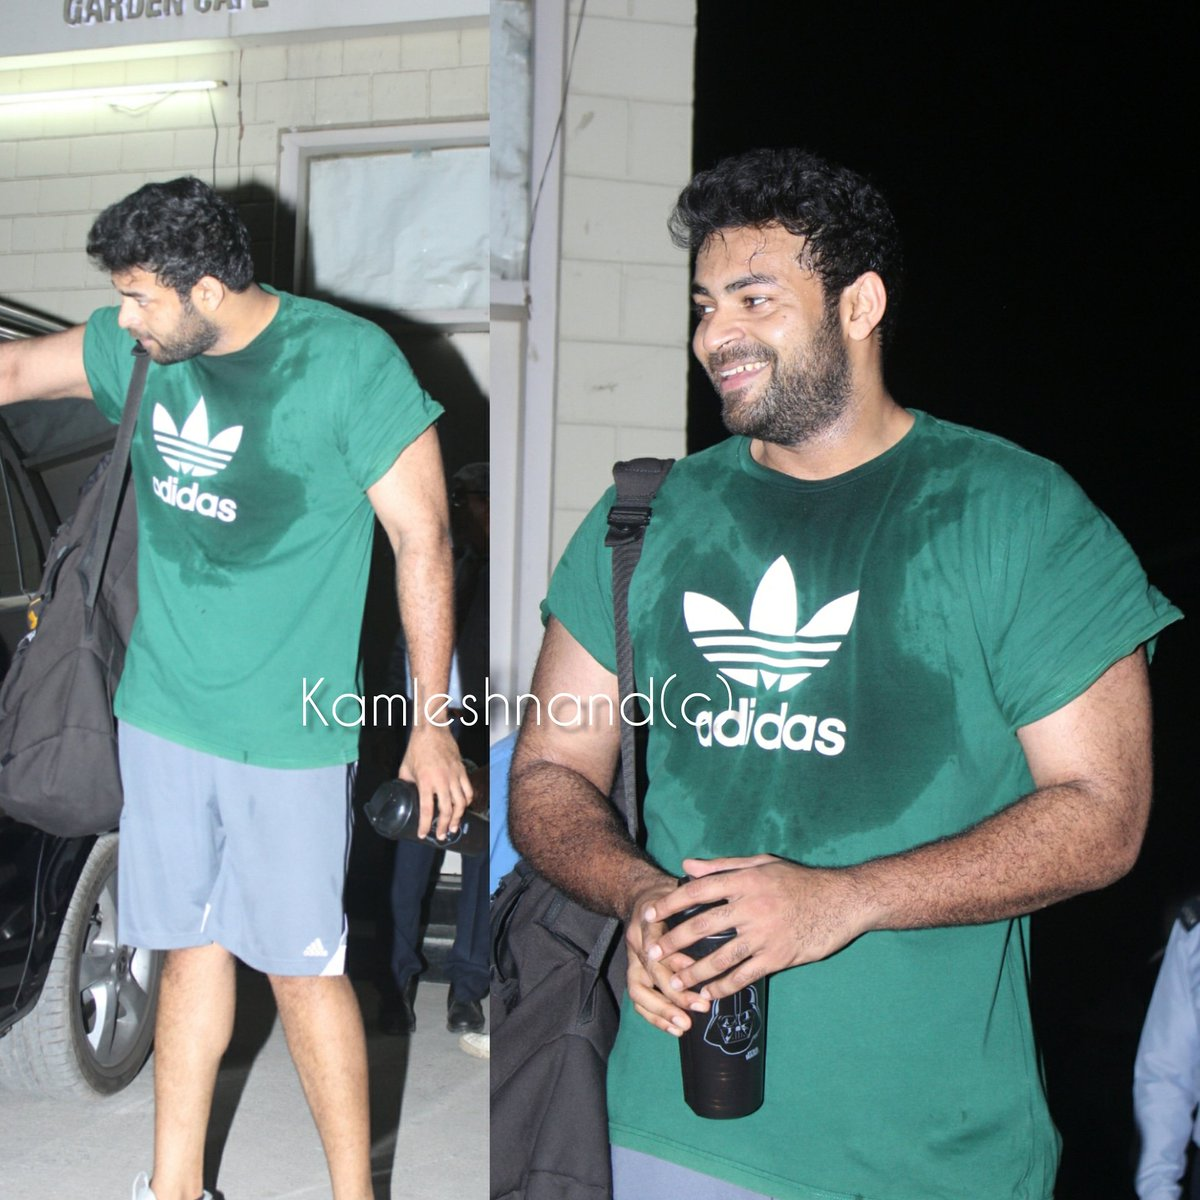 Actor #varuntej sweating it out for boxer papped post gym session  @kamlesh_nand @IAmVarunTej  #Tollywood #southpaparazzi pic.twitter.com/9EtaZzuj6w